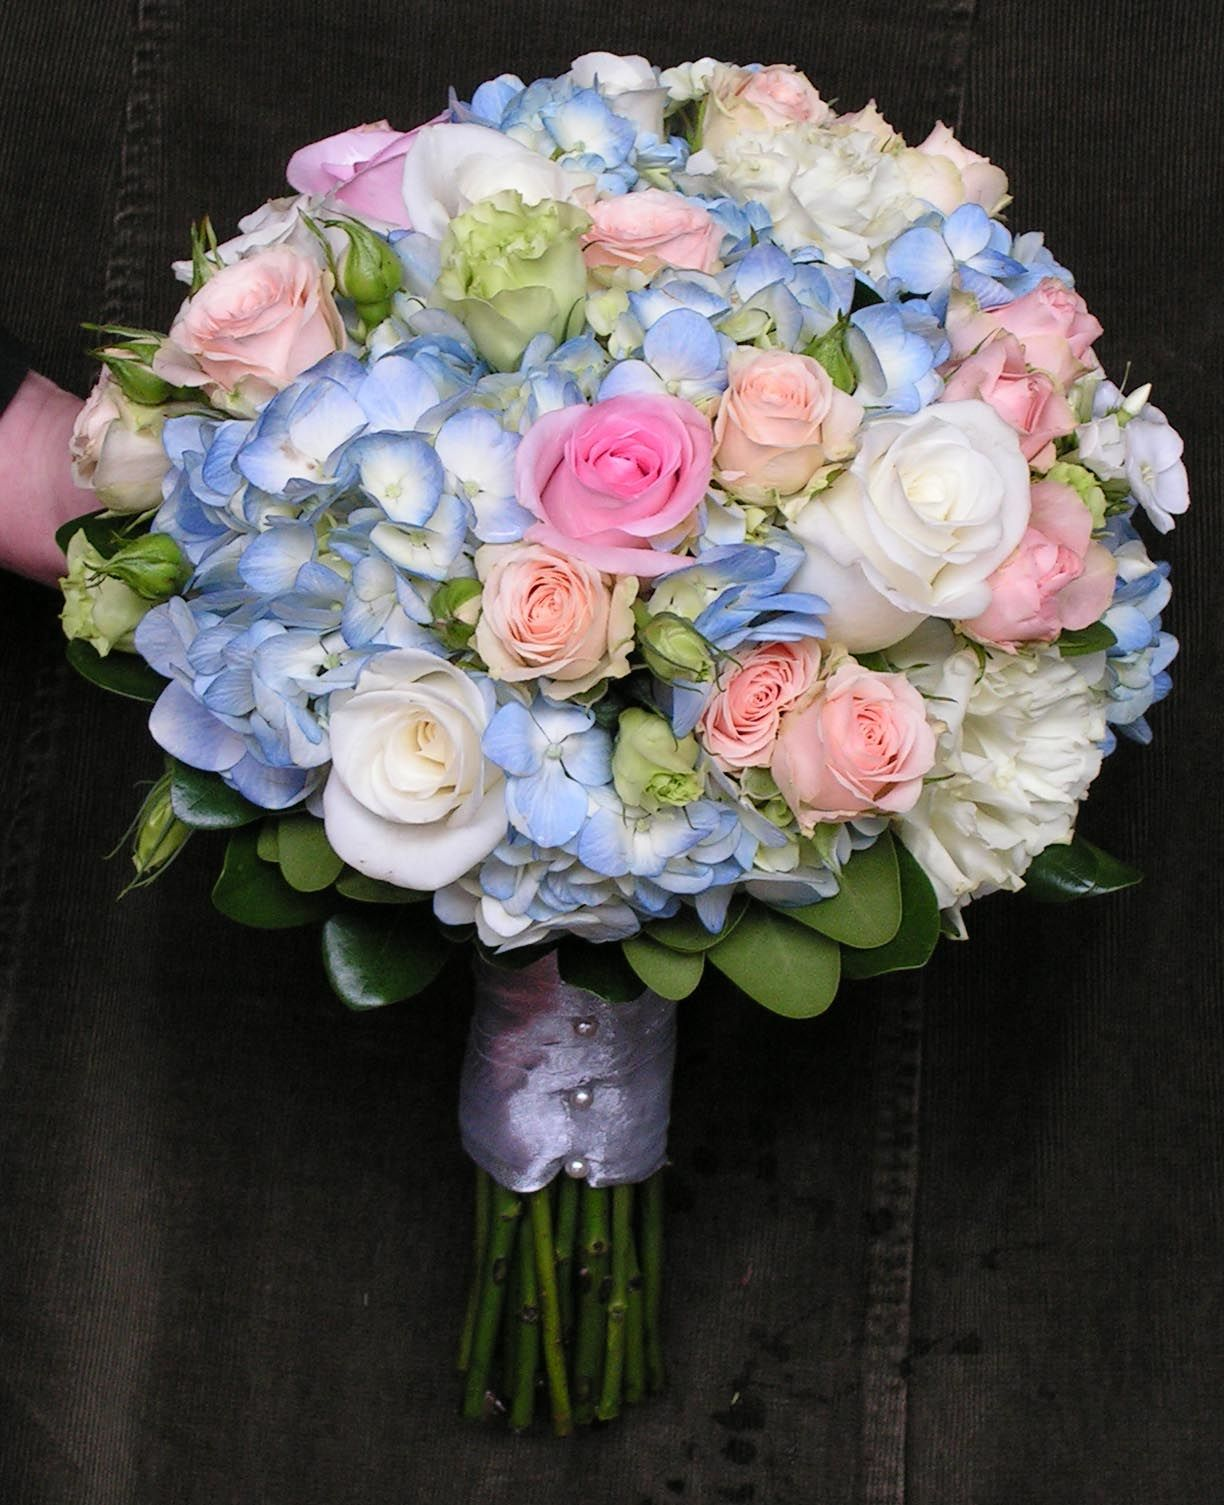 Wedding Bouquets With Blue Flowers: Blue Hydrangea Bouquet With Pink Roses